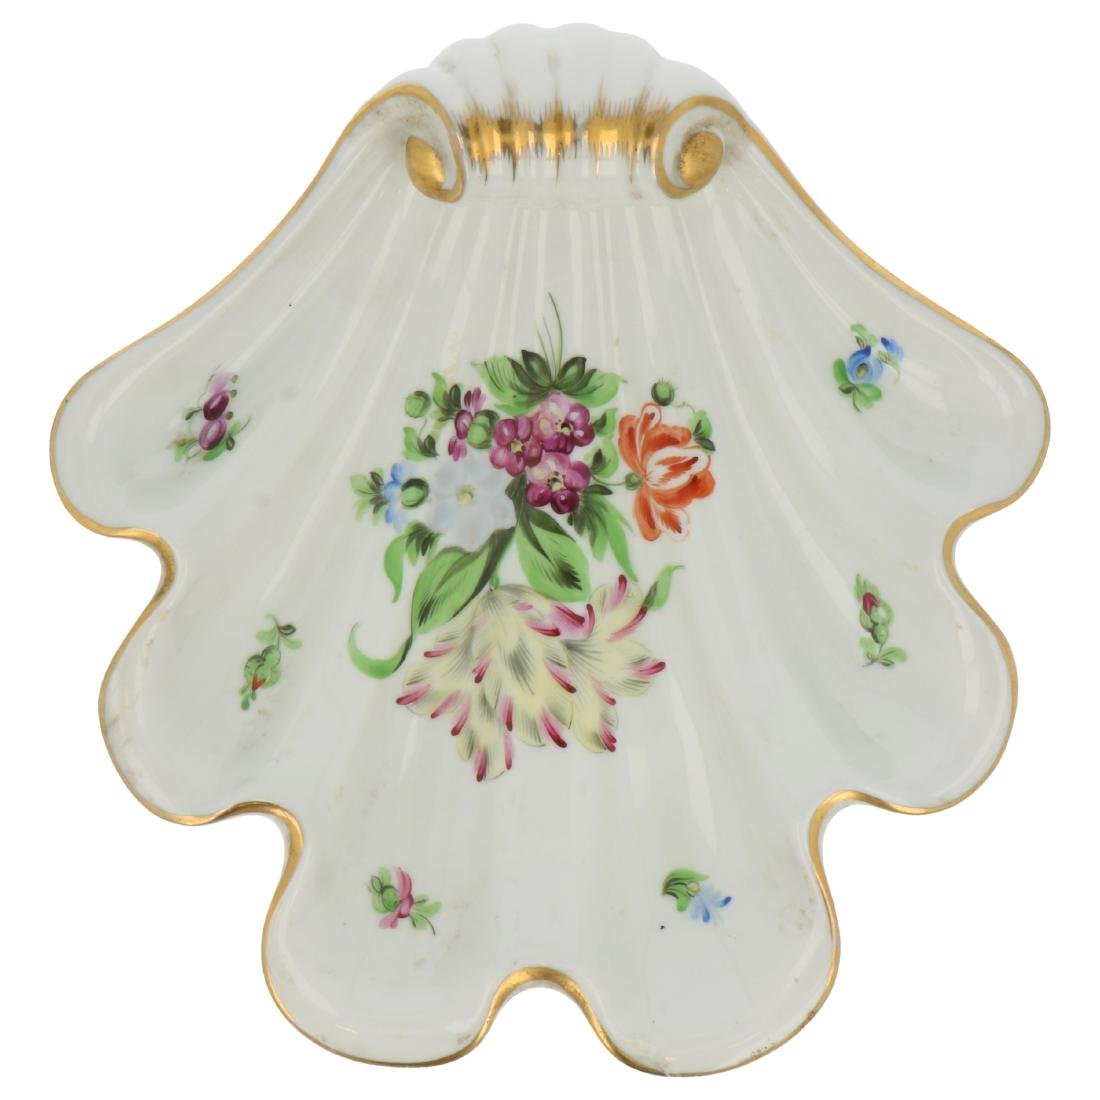 Herend porcelain shell plate.